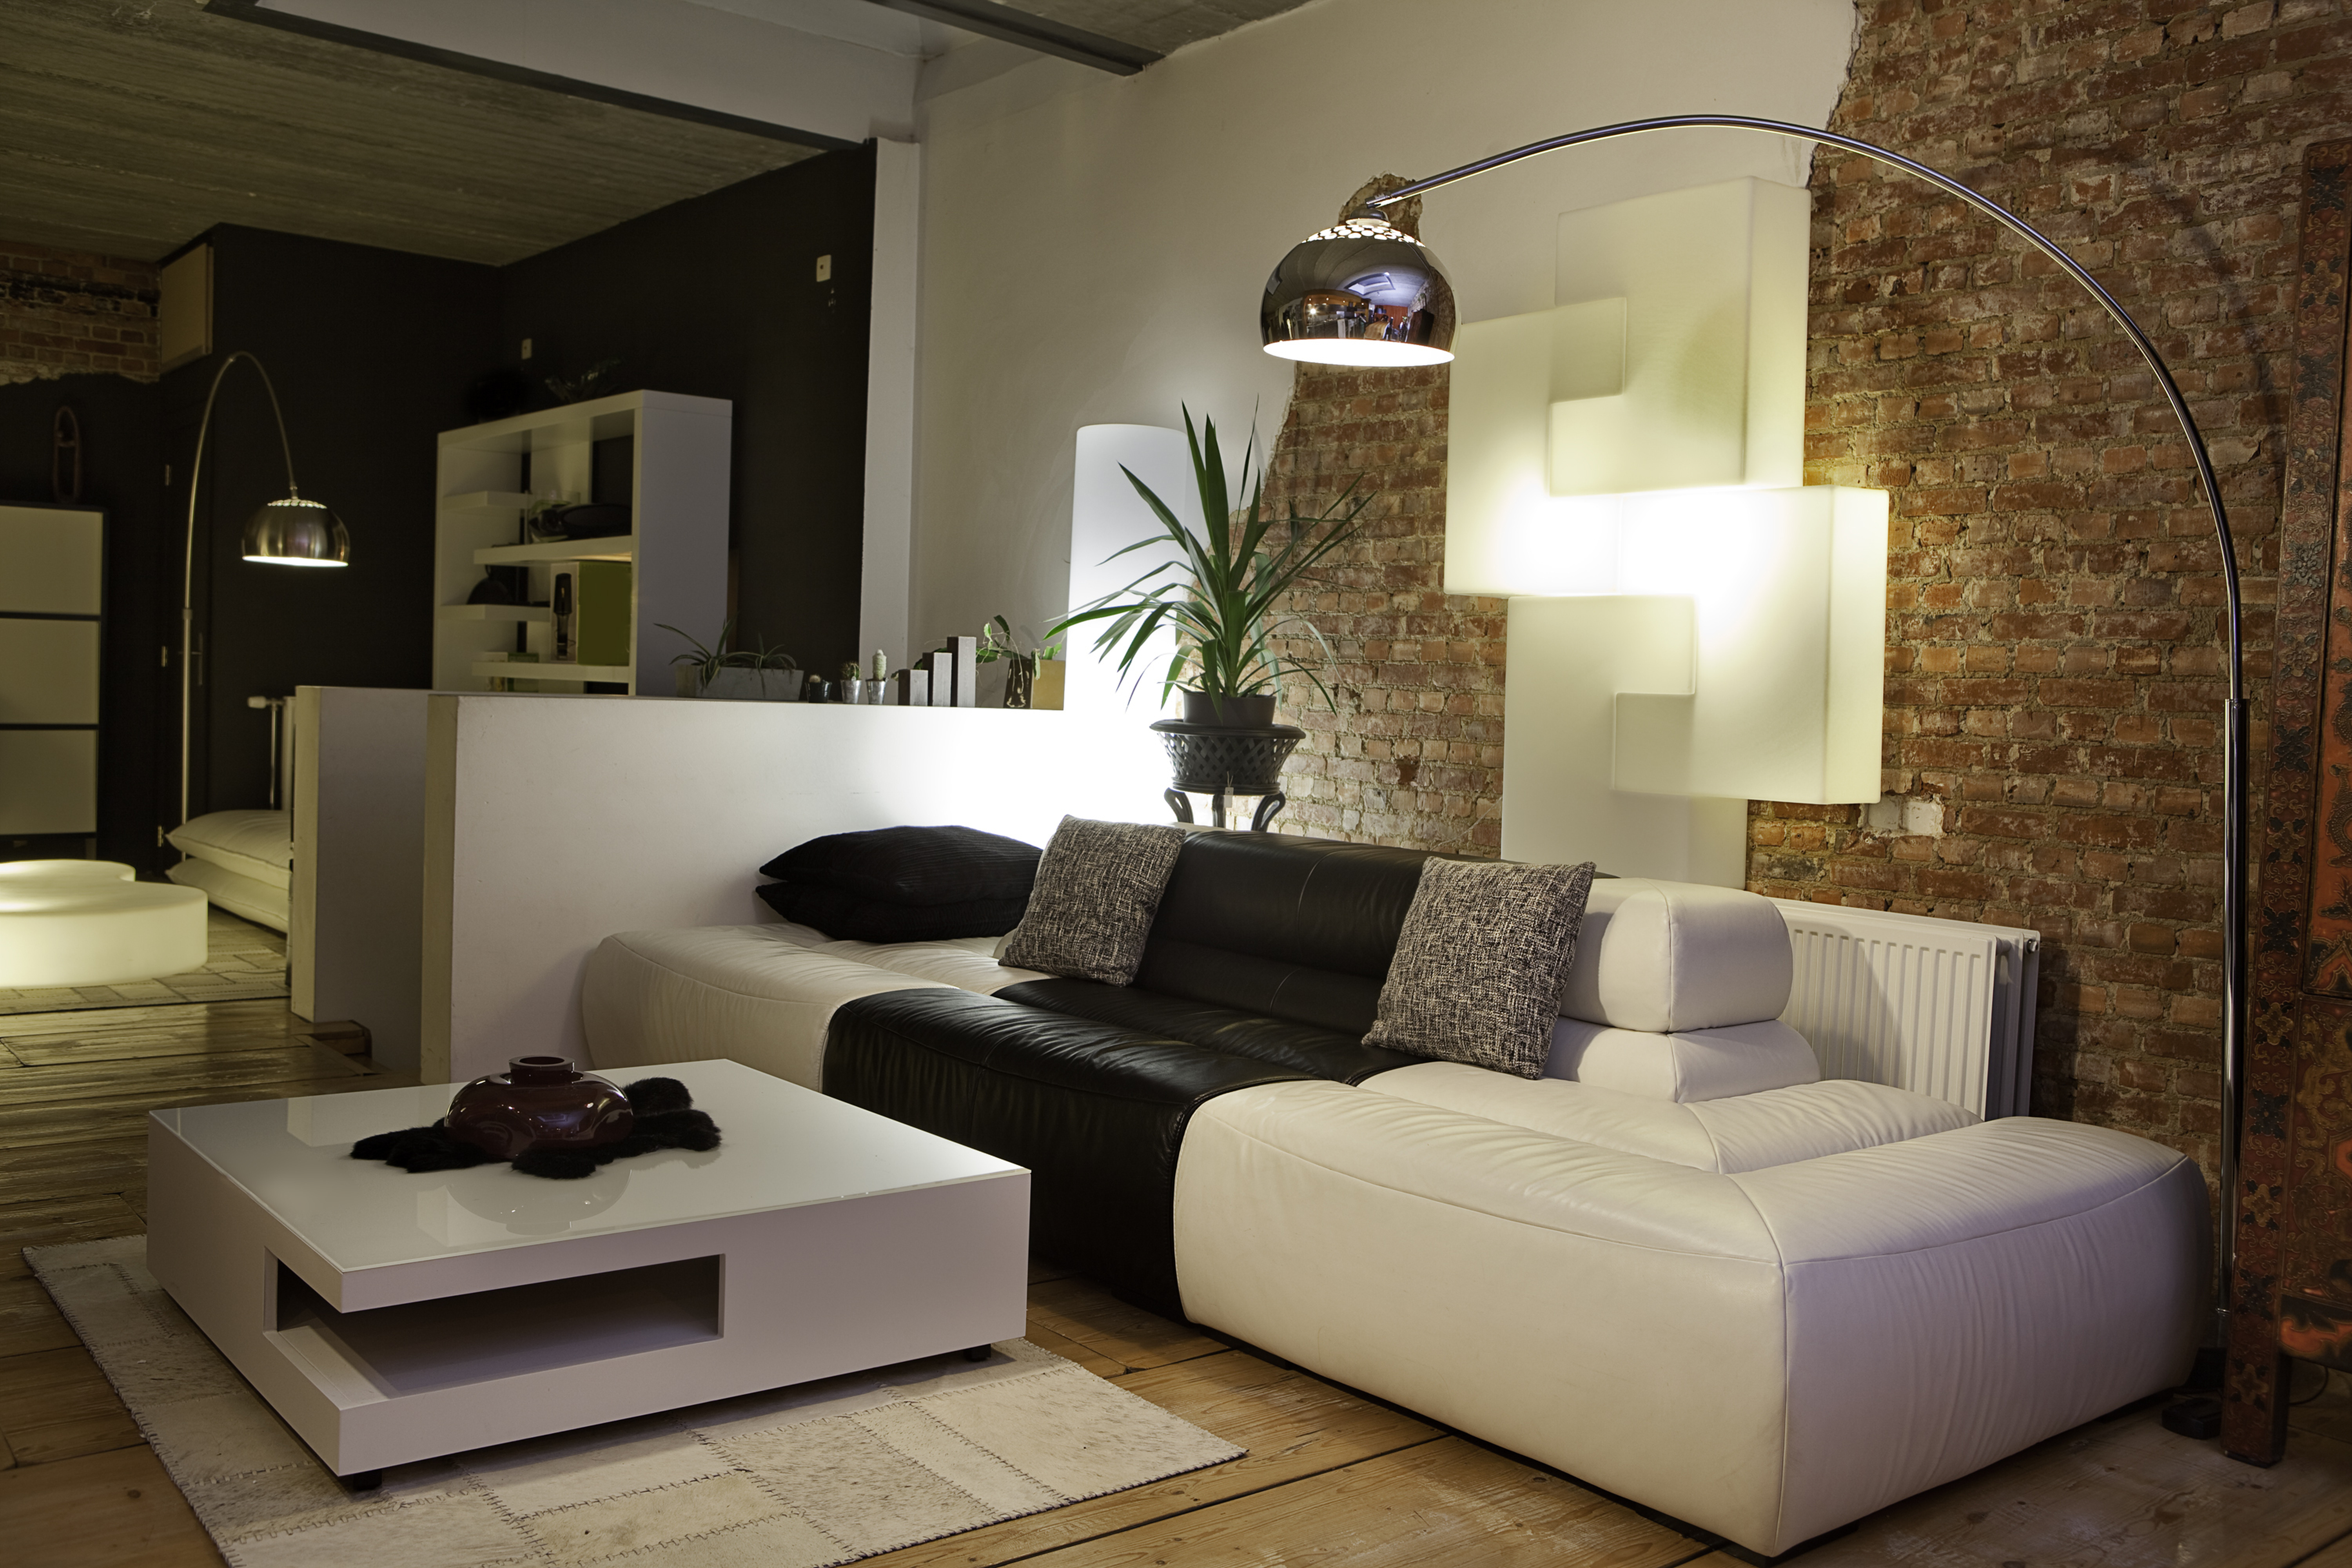 5 Simple Lighting Tips To Brighten Up Your Apartment